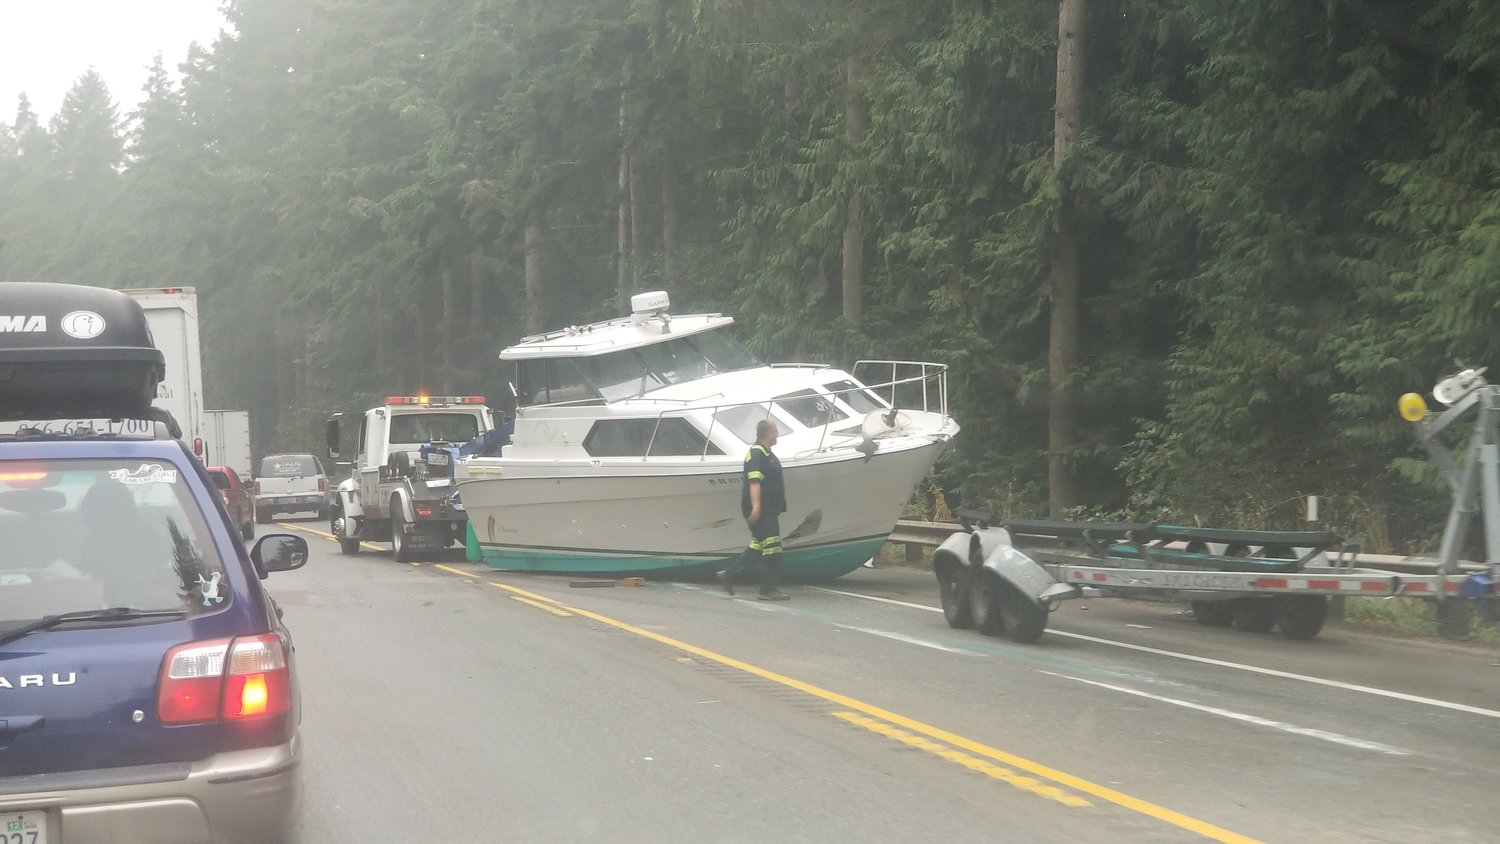 A yacht blocks the eastbound lane of Highway 104 west of the Hood Canal Bridge Tuesday.